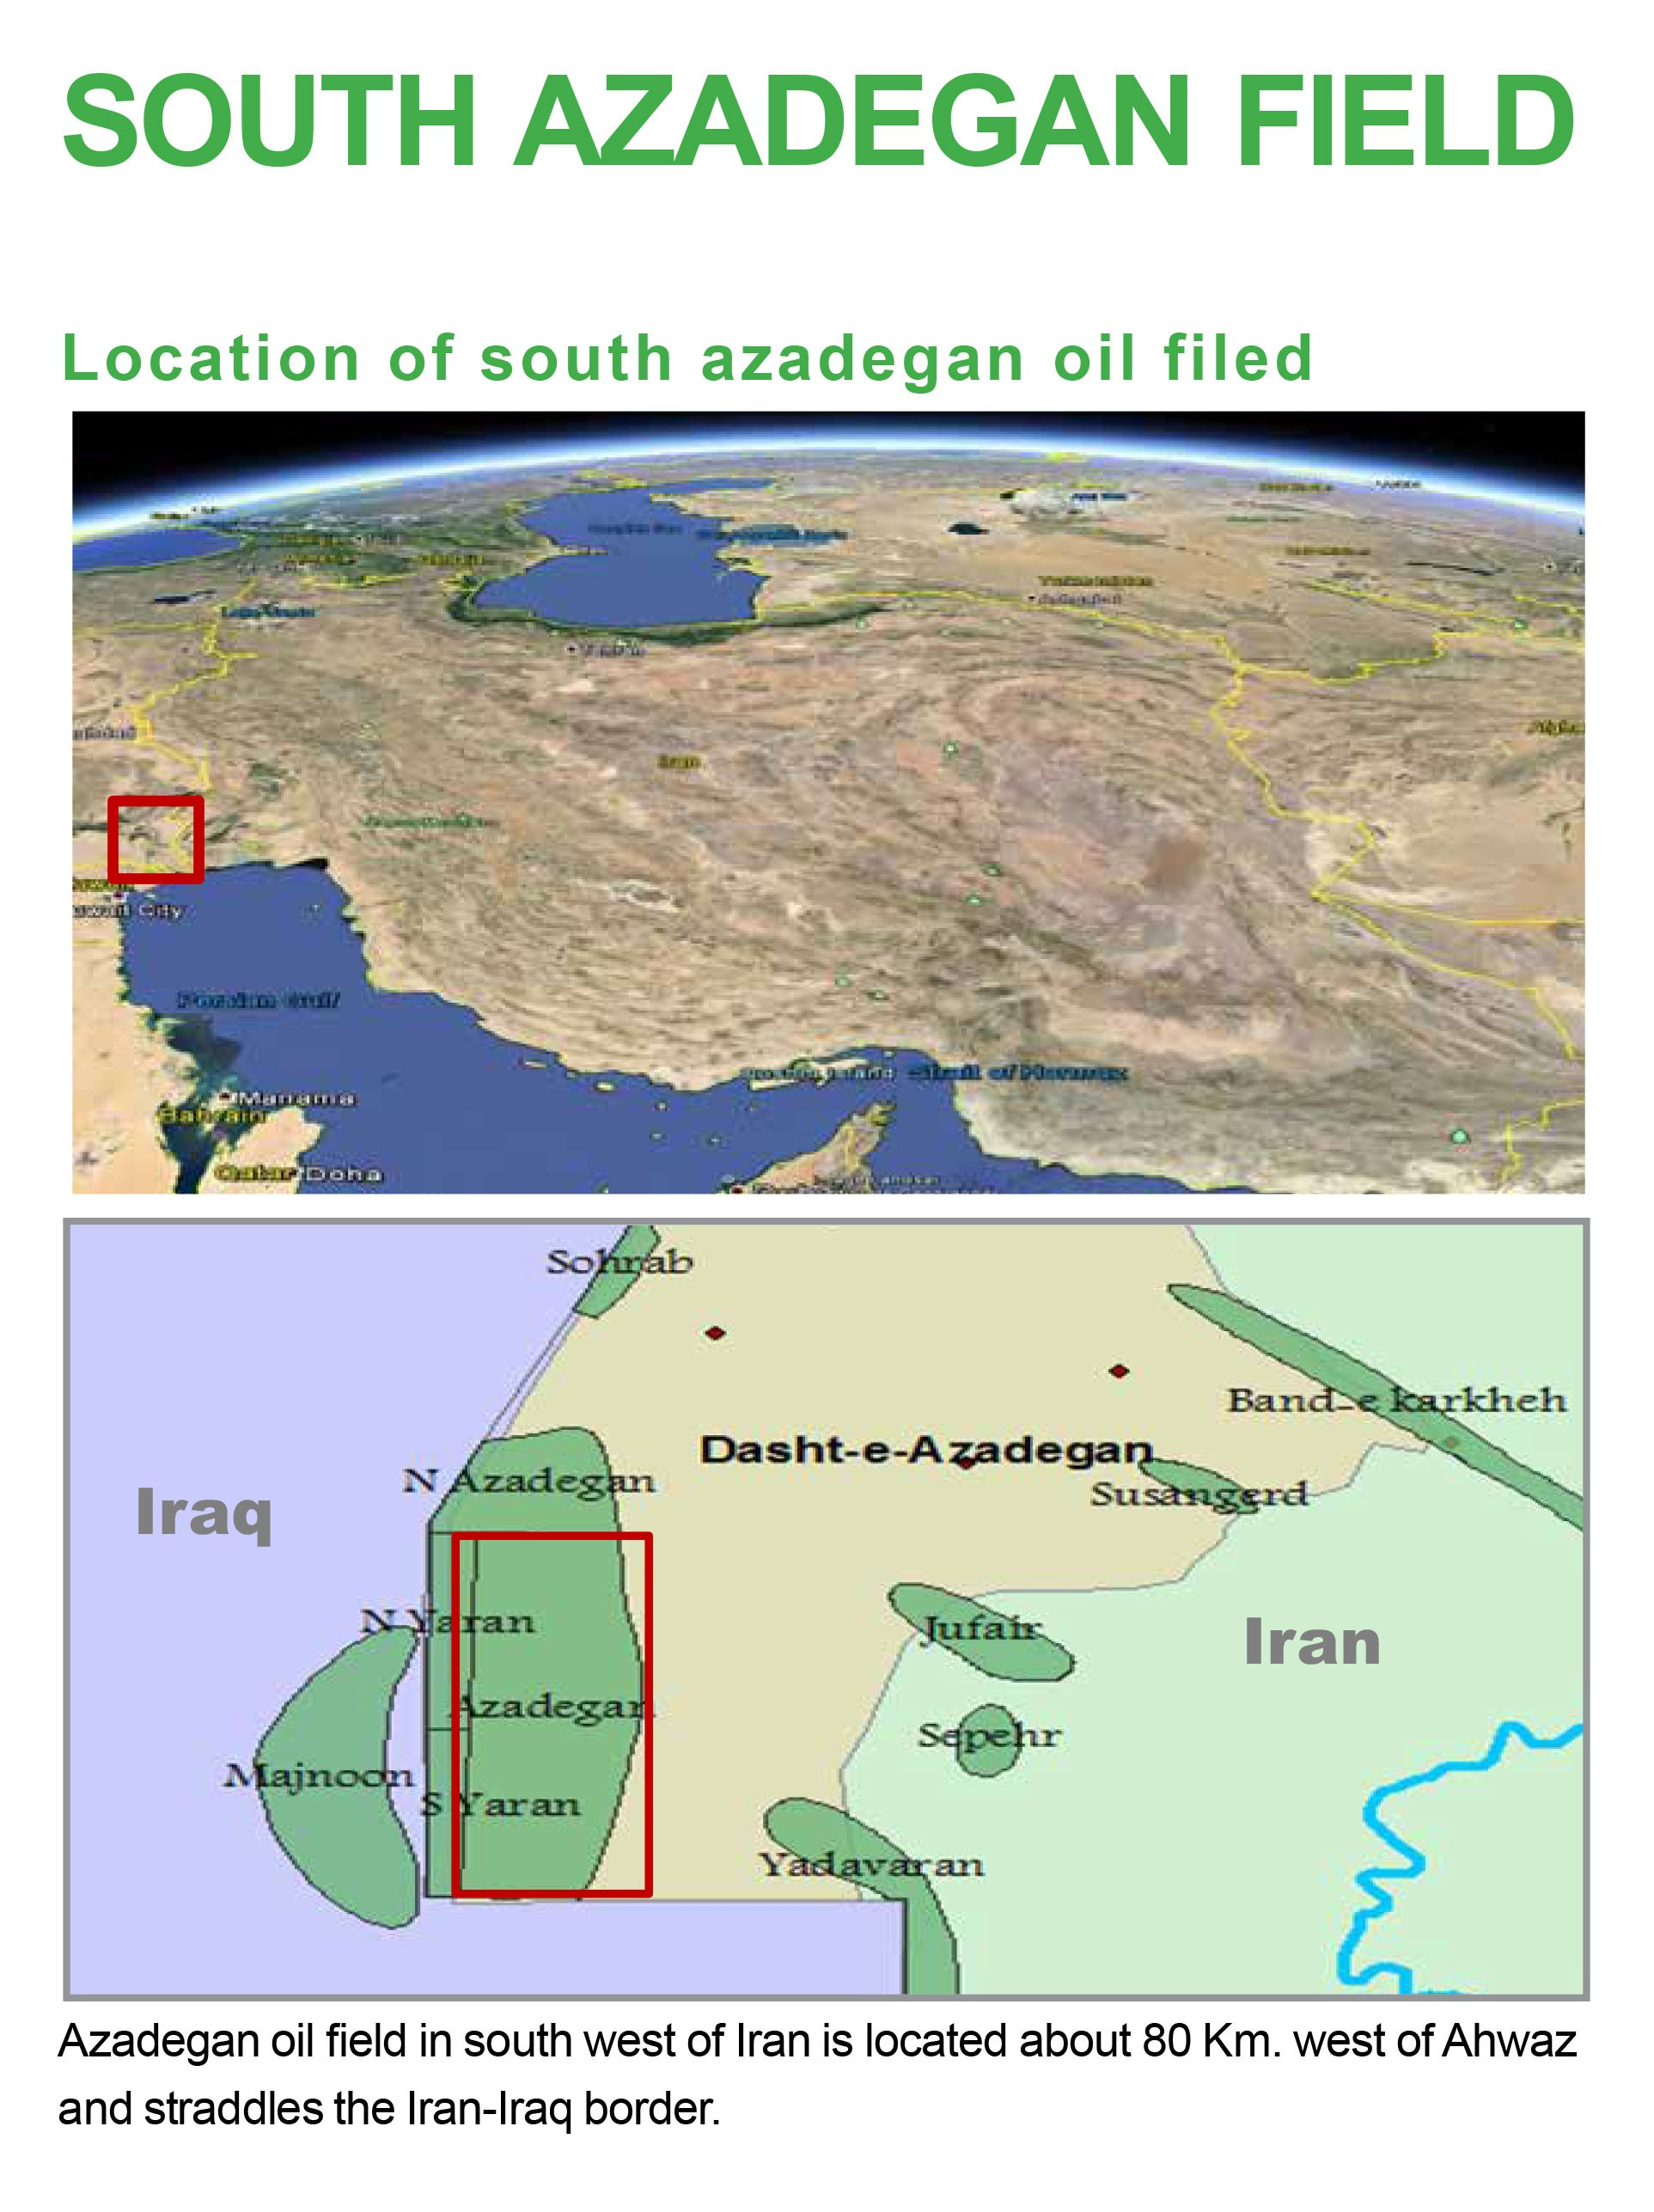 Azadegan oil field in south west of Iran is located about 80 Km. west of Ahwaz  and straddles the Iran-Iraq border.